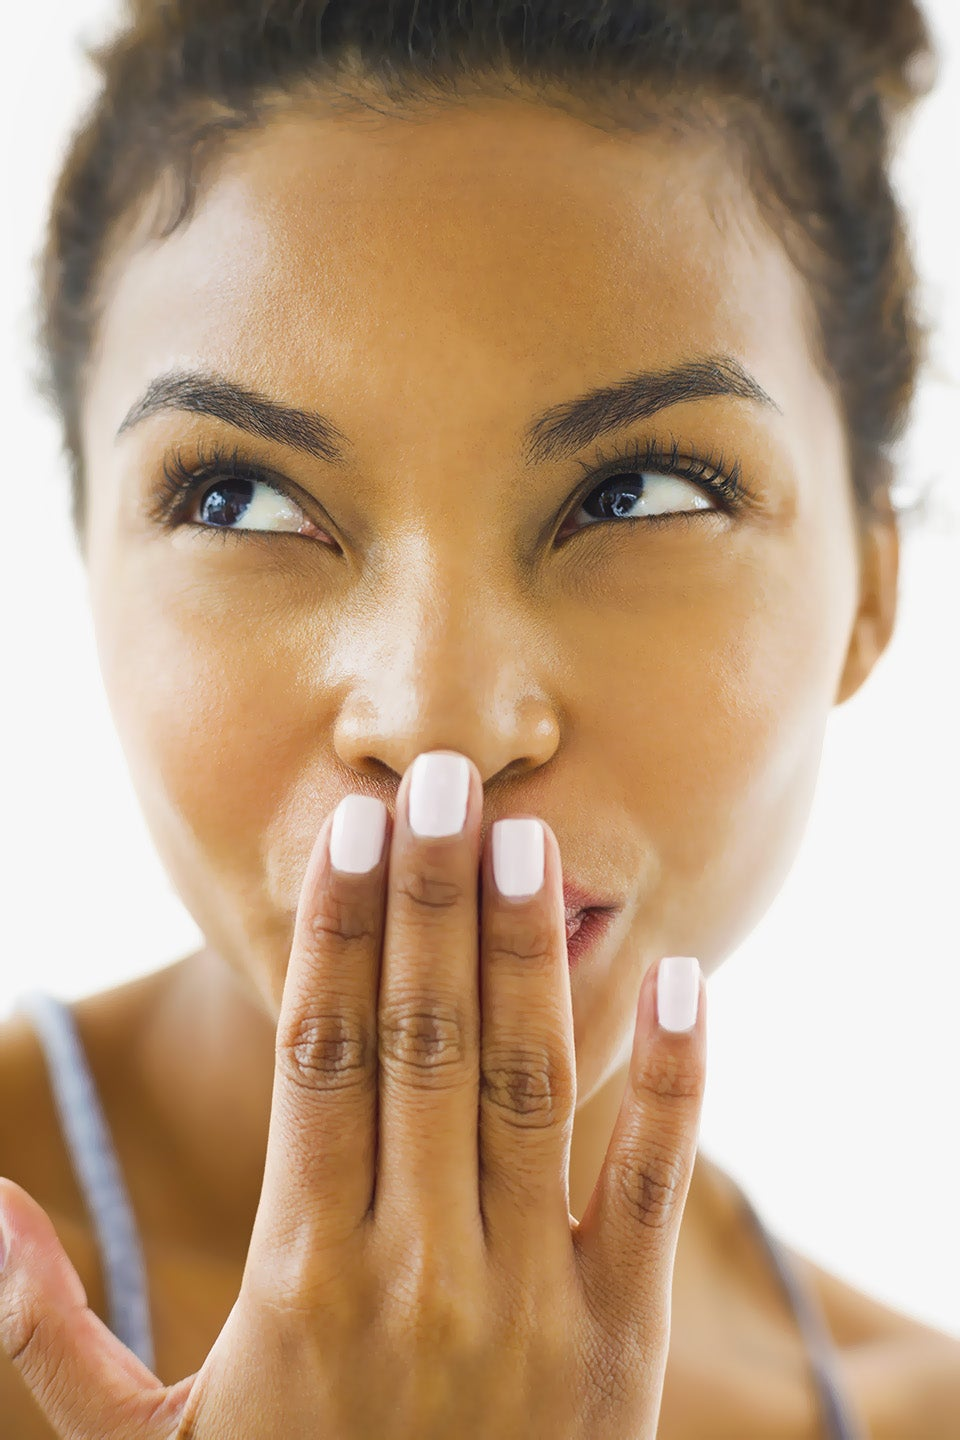 7 Manicure Mistakes You Might Be Making